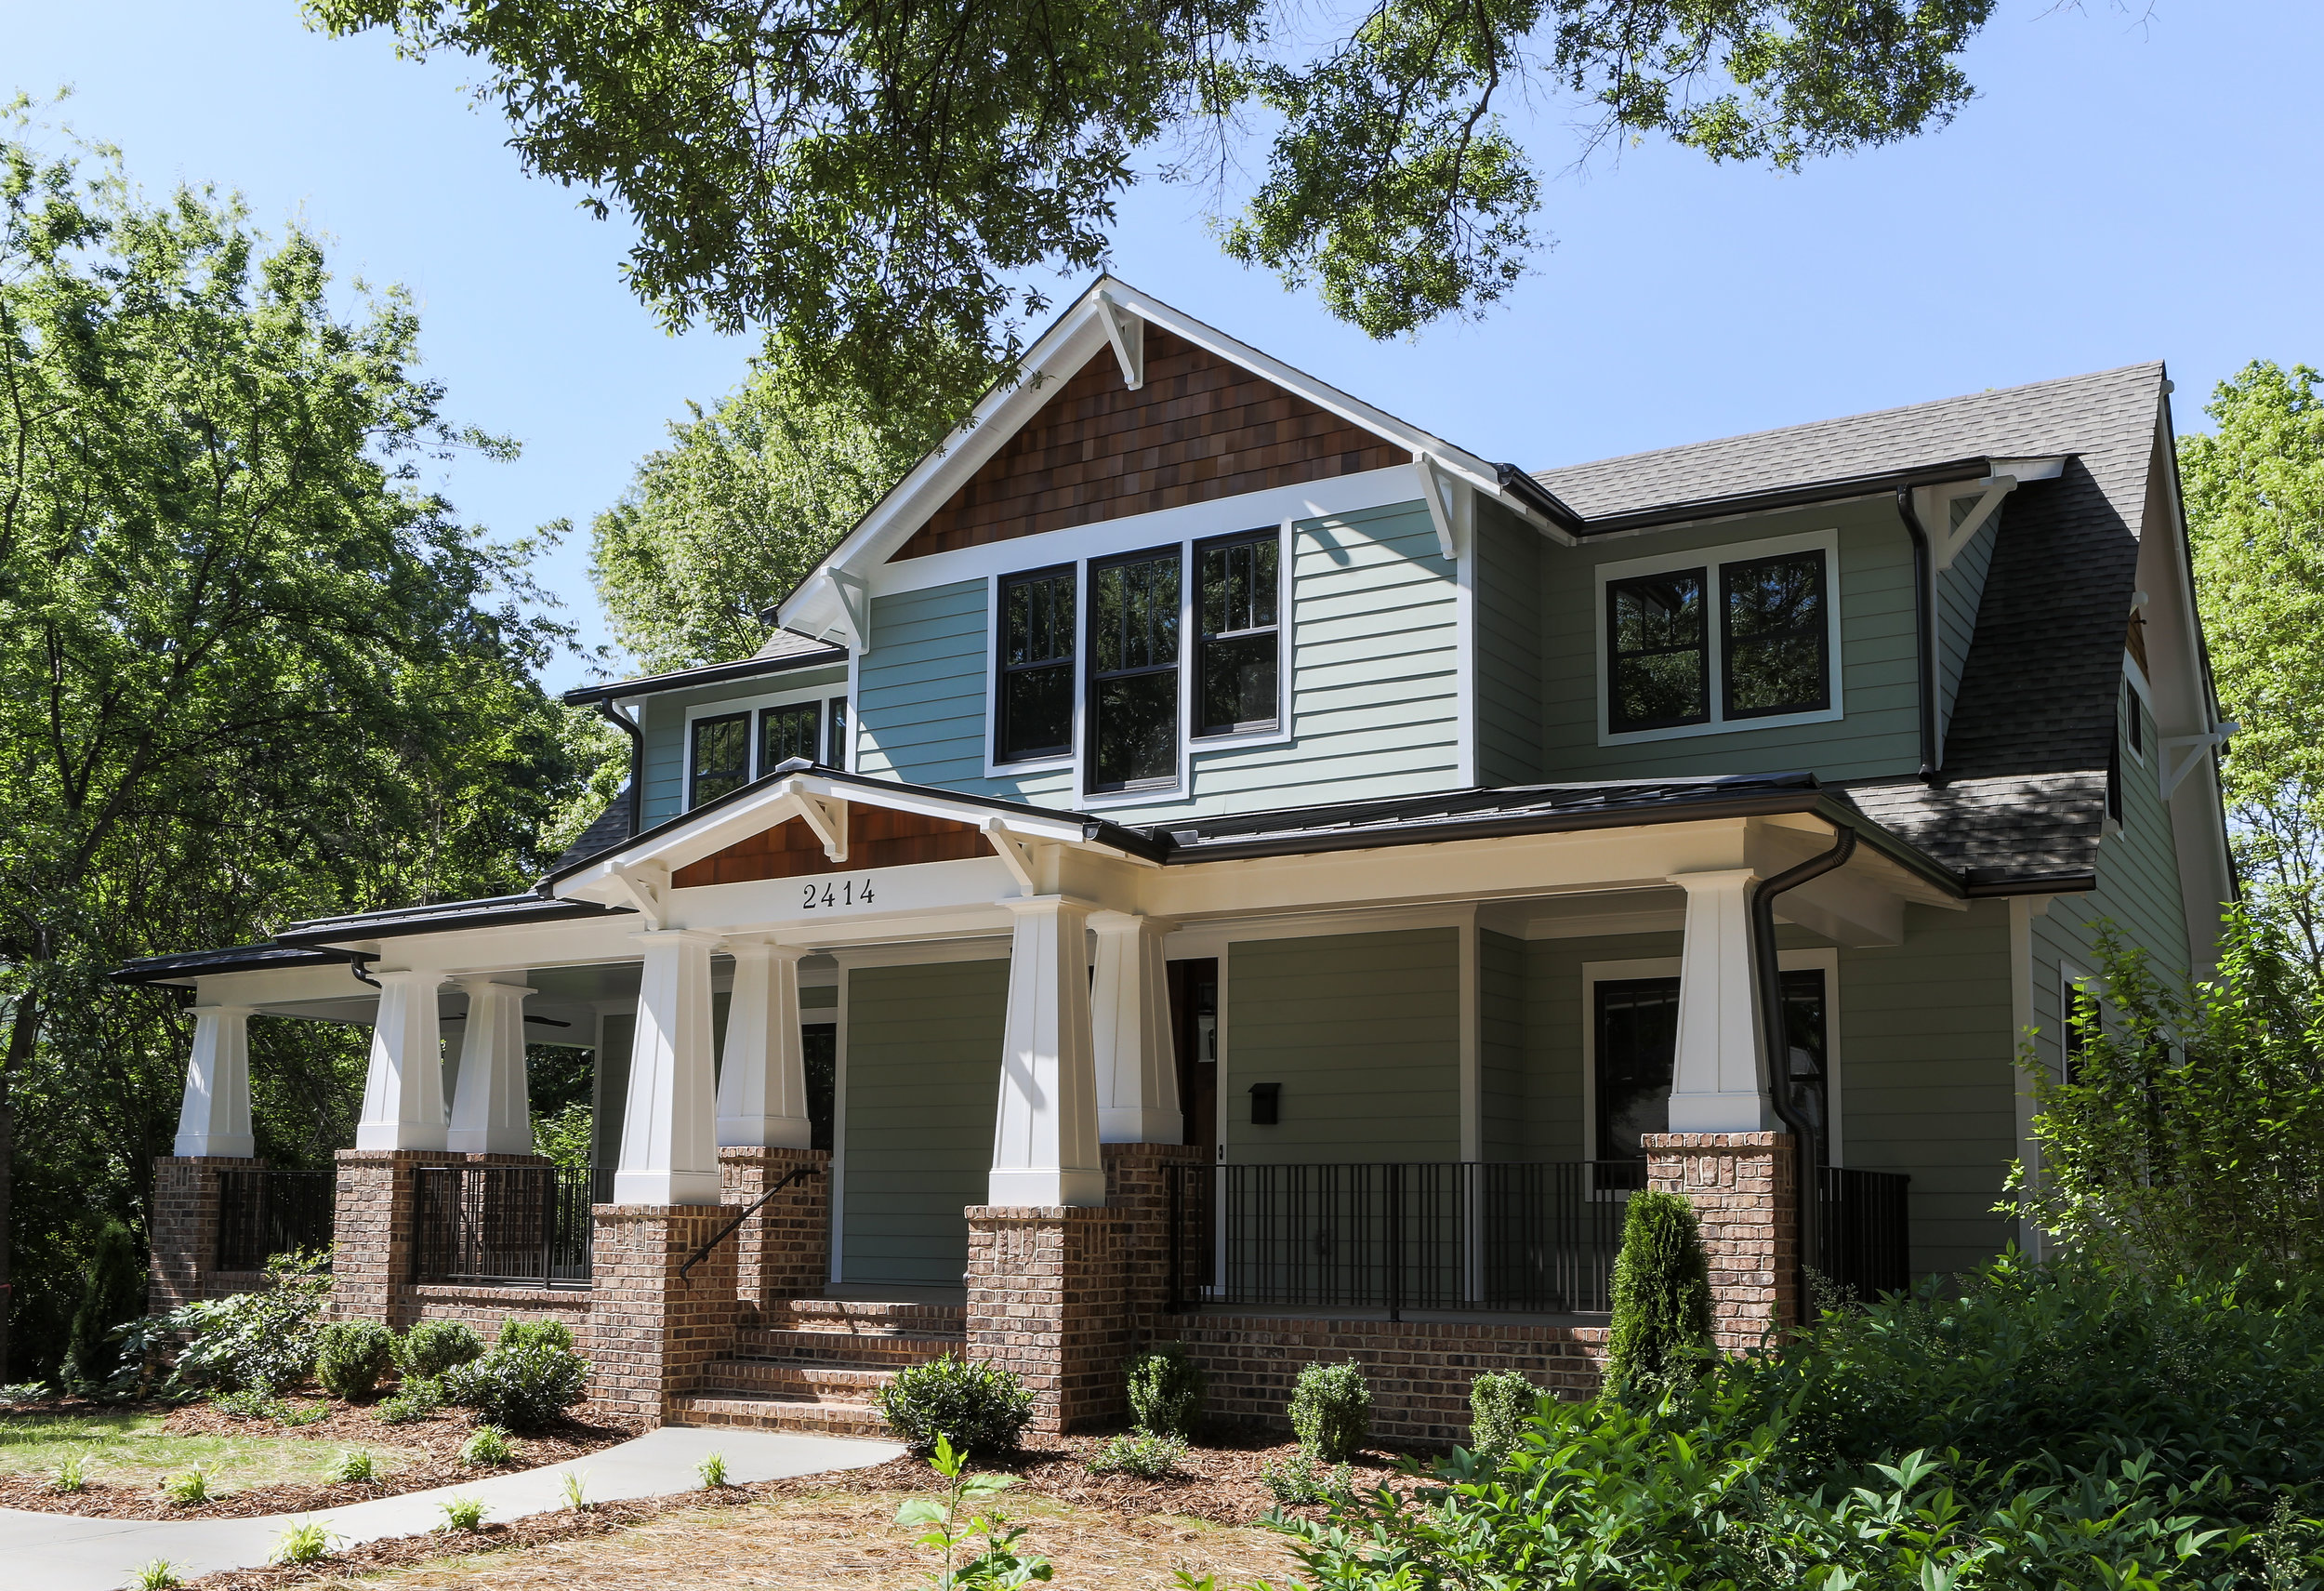 We are a custom home builder based in charlotte north carolina we specialize in new homes and large scale additions and renovations